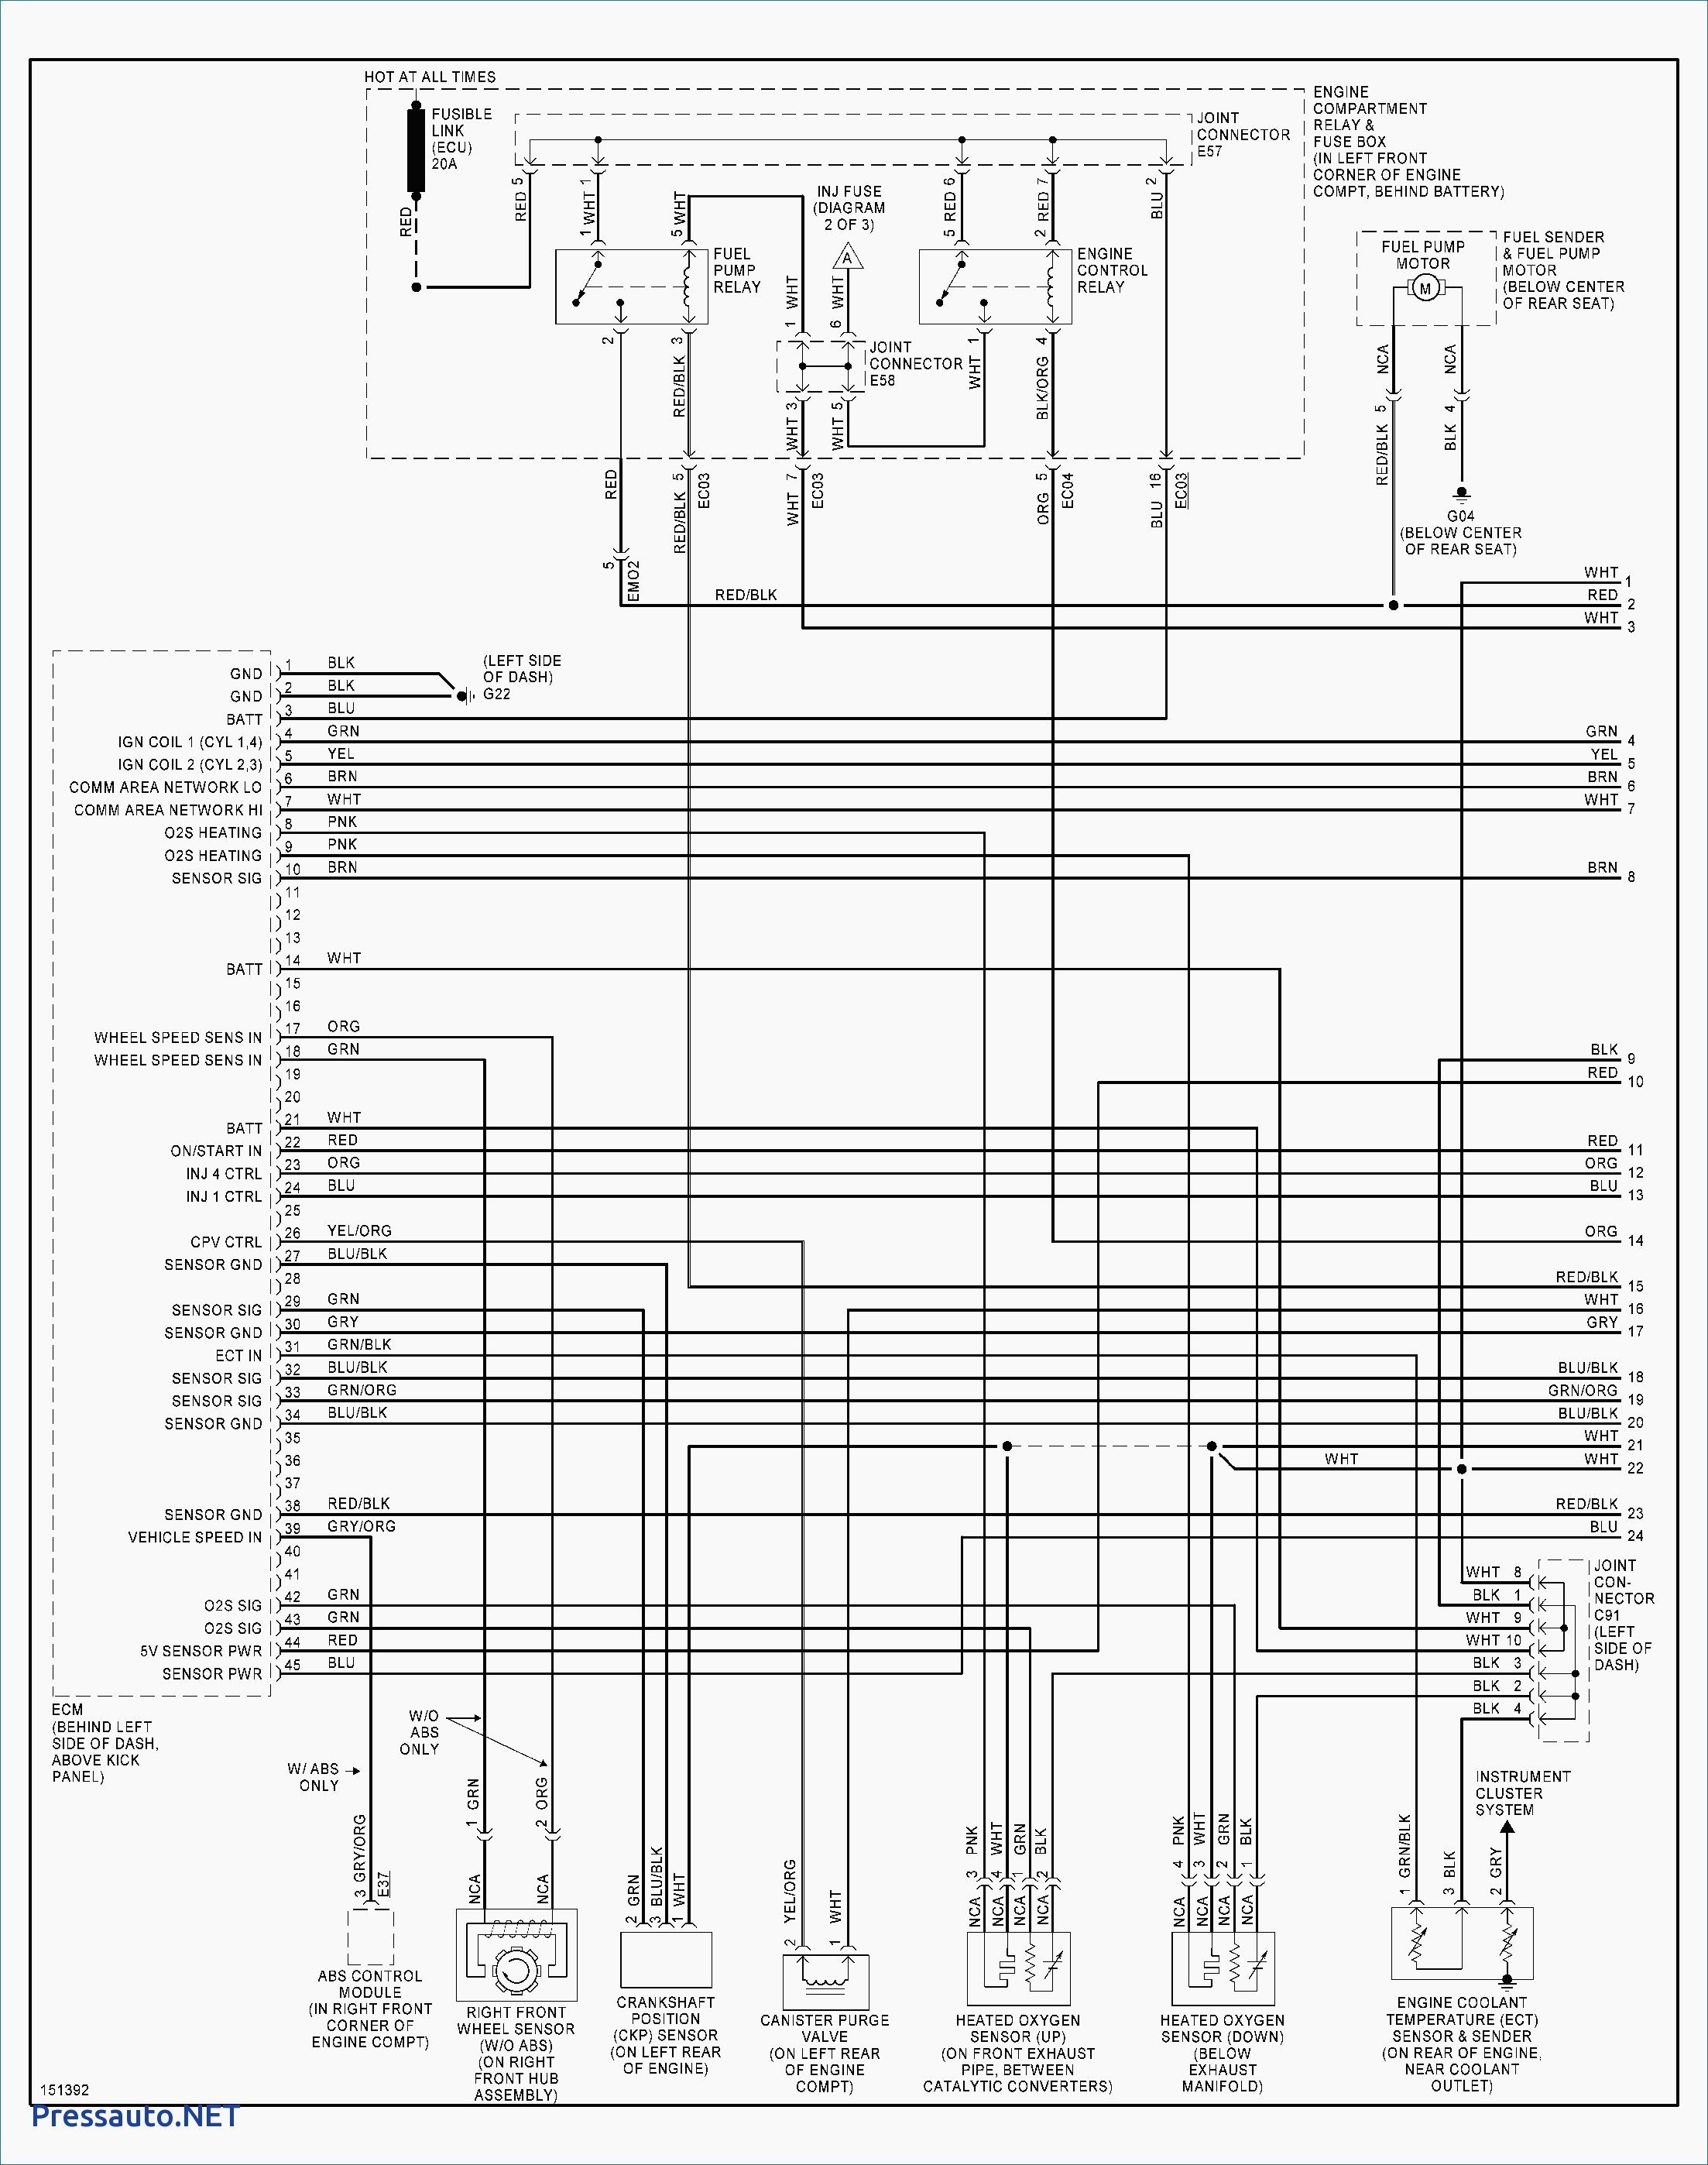 97 hyundai accent wiring diagram introduction to electrical wiring 2001 hyundai accent starter wiring diagram wiring diagram hyundai accent 2000 wire center u2022 rh hannalupi co 2012 hyundai accent fuse diagram hyundai accent electrical diagram horn